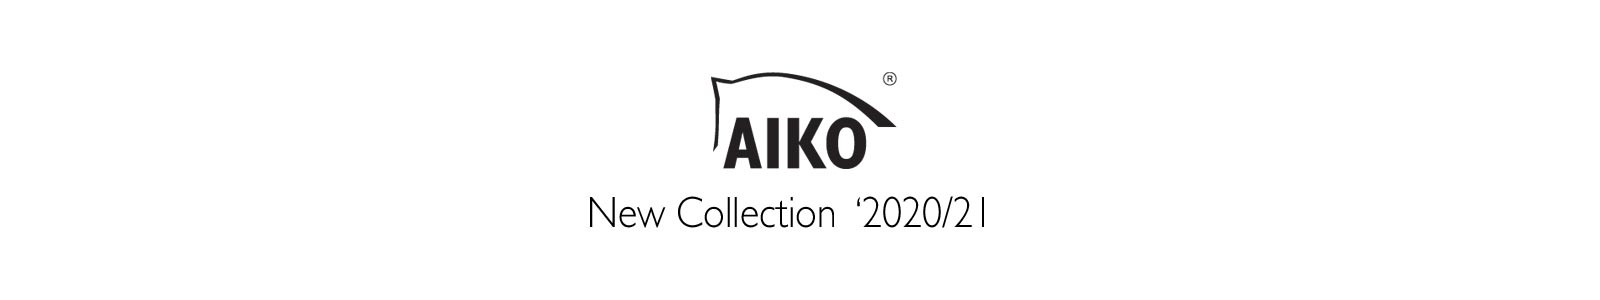 AIKO New Collection